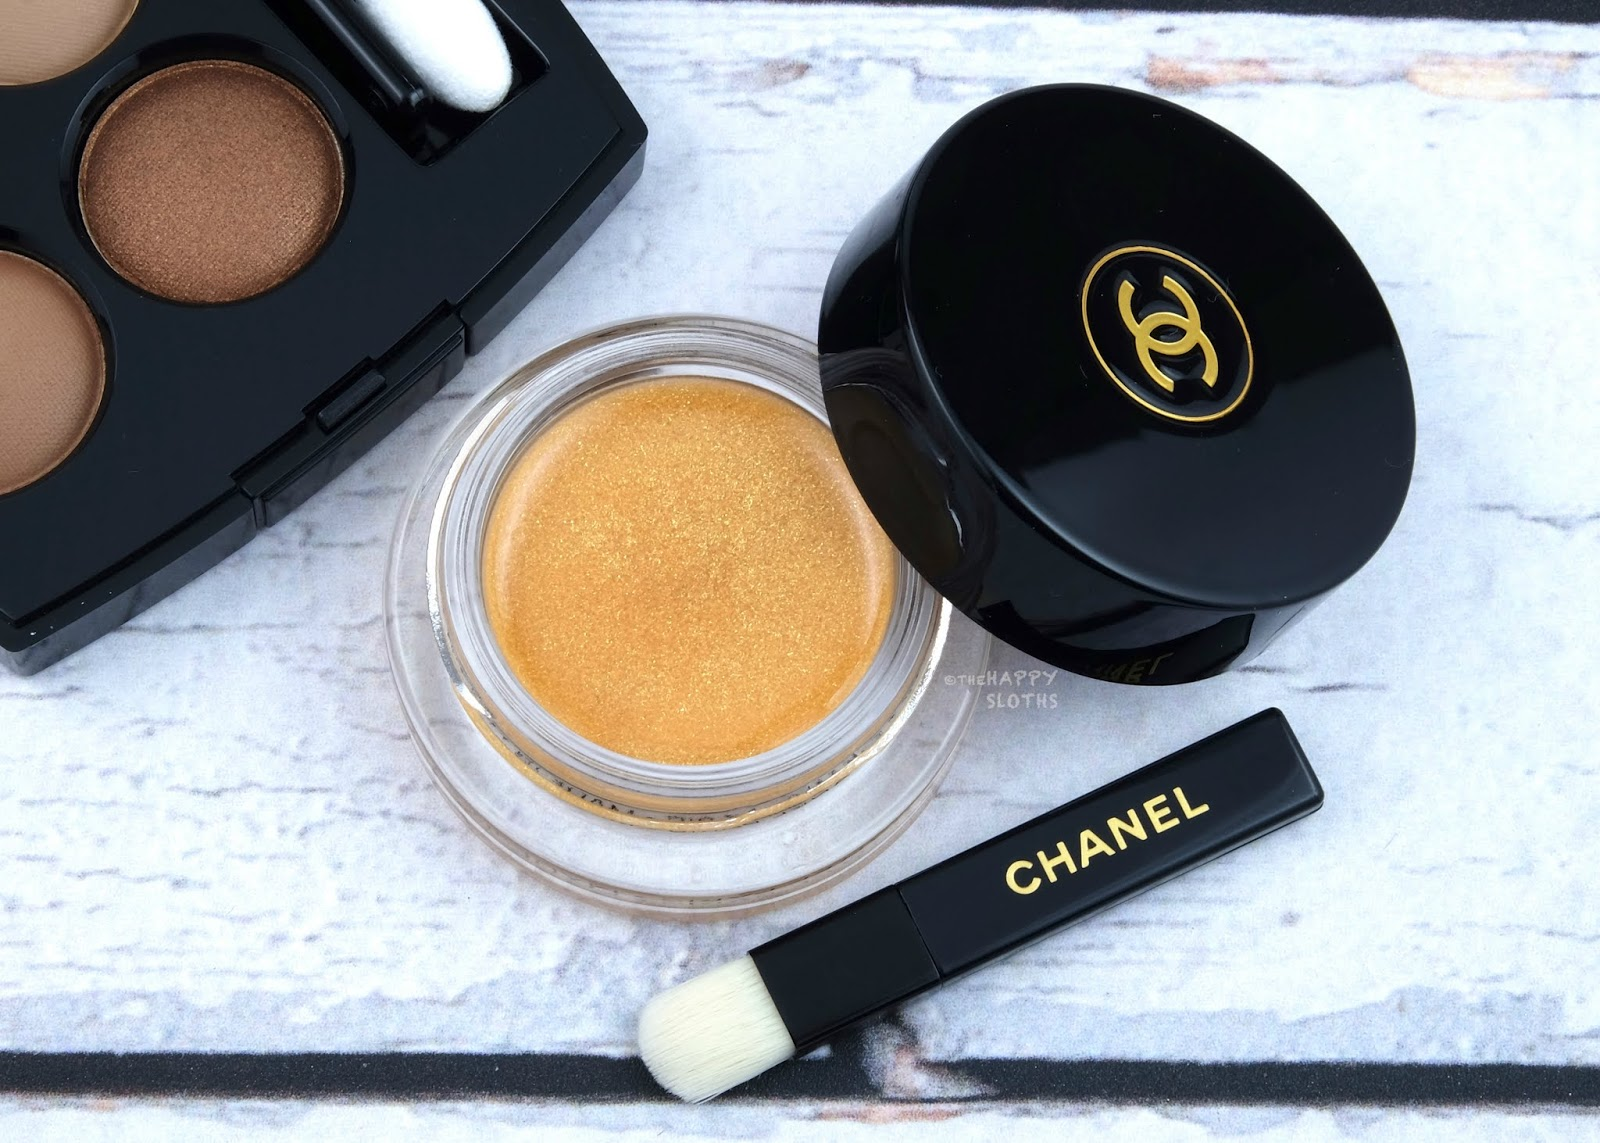 "Chanel Cruise Collection 2019 | Ombre Première Gloss Top Coat Eyeshadow in ""Solaire"": Review and Swatches"